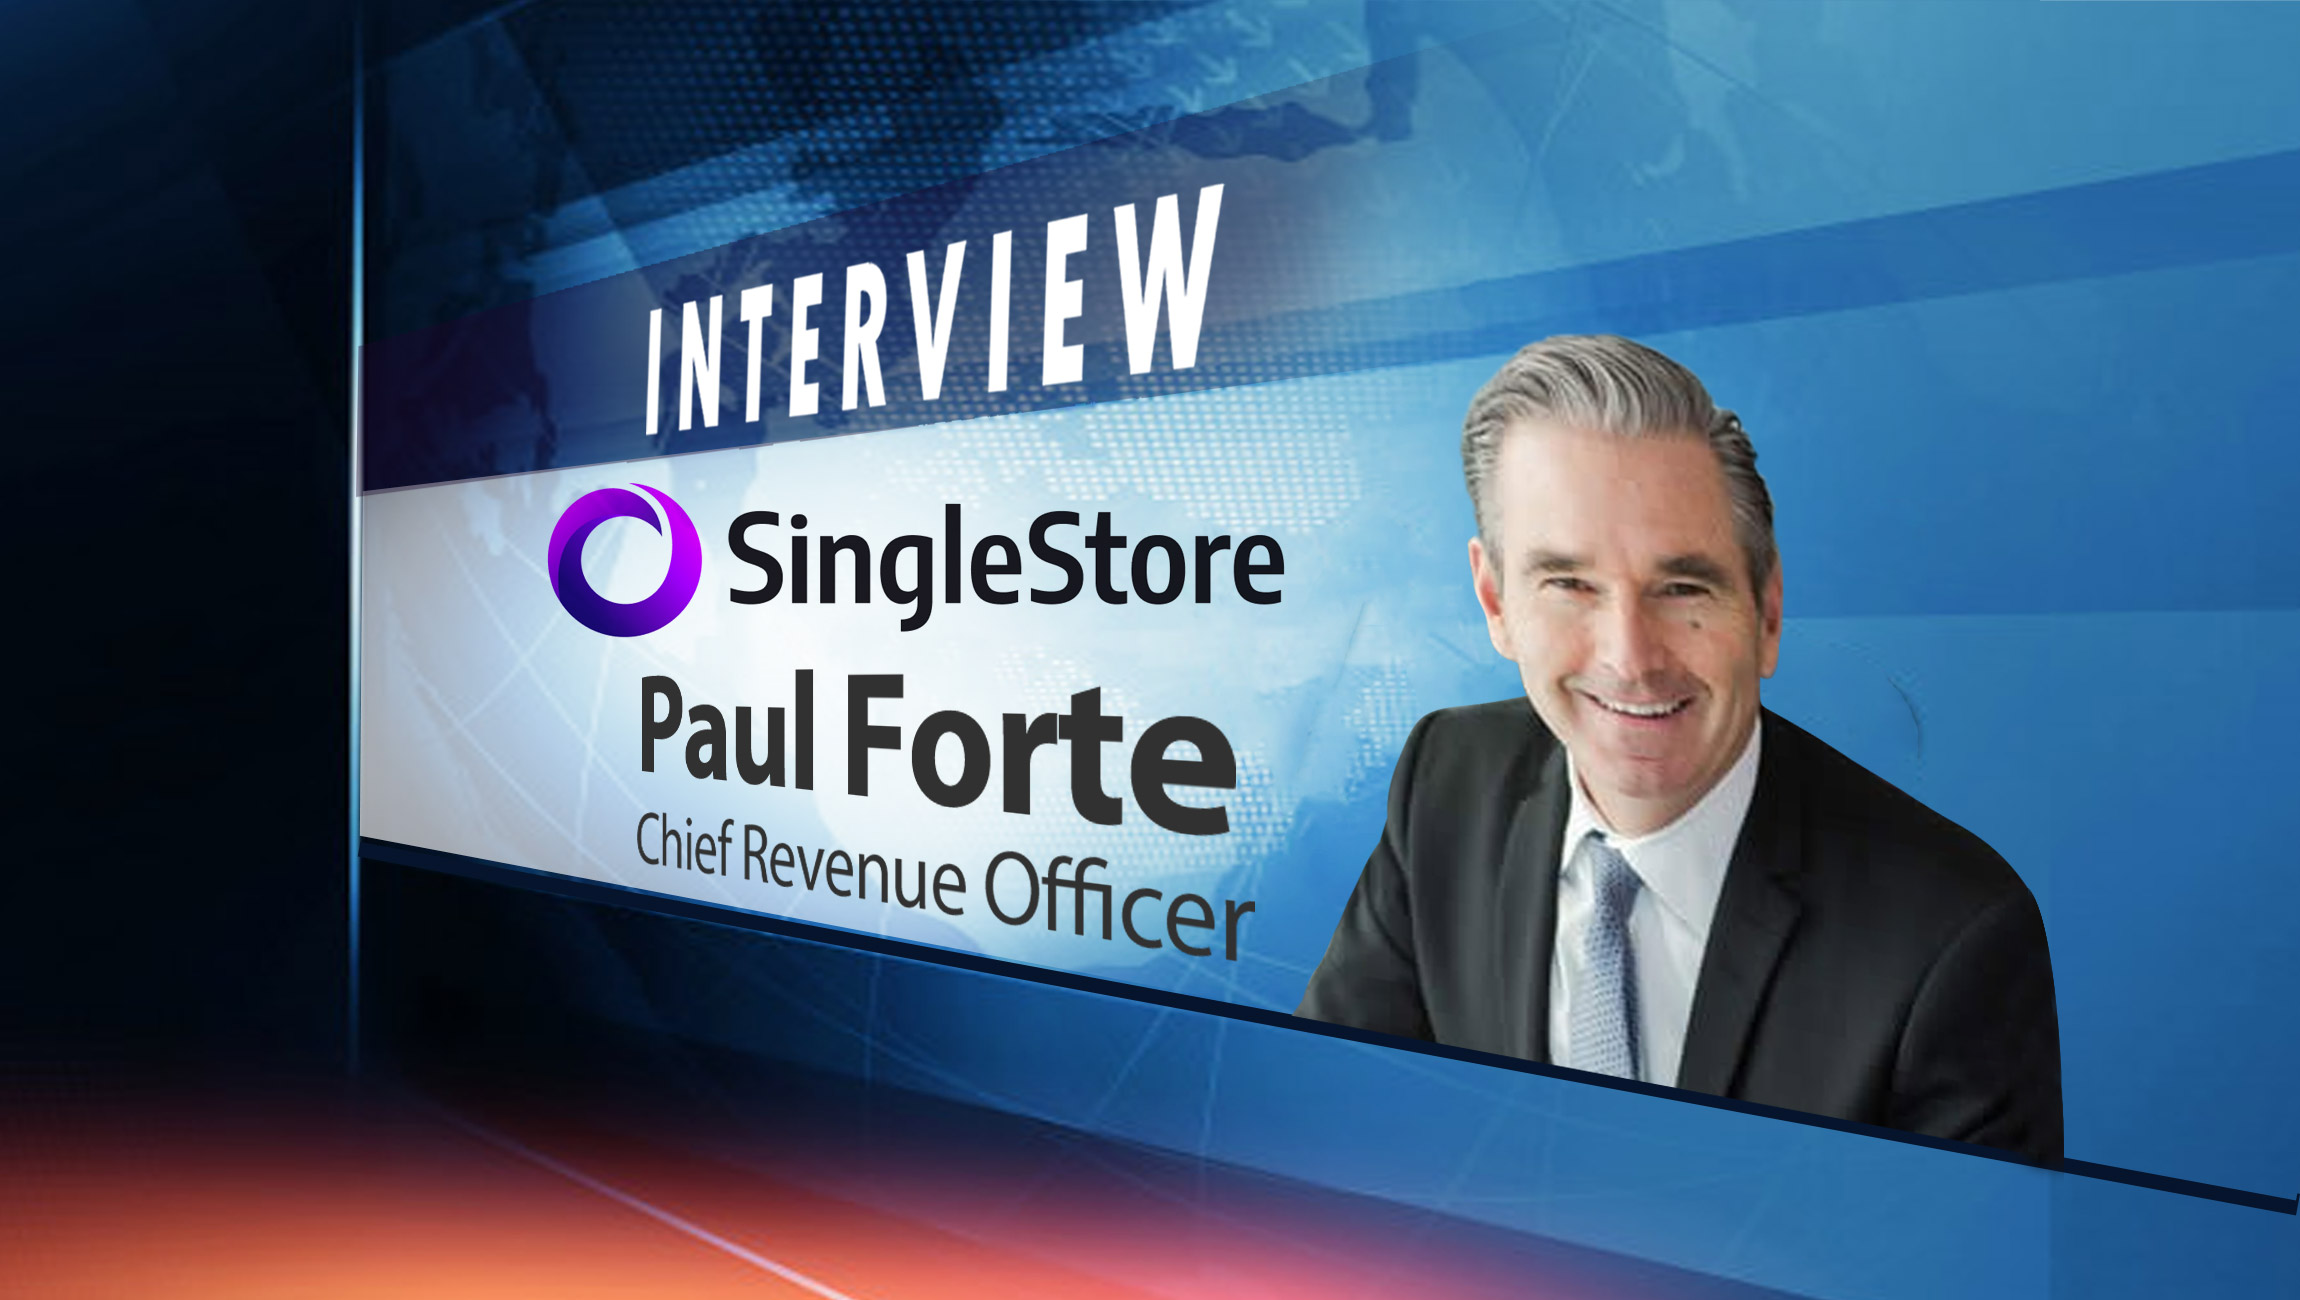 SalesTechStar Interview with Paul Forte, Chief Revenue Officer at SingleStore